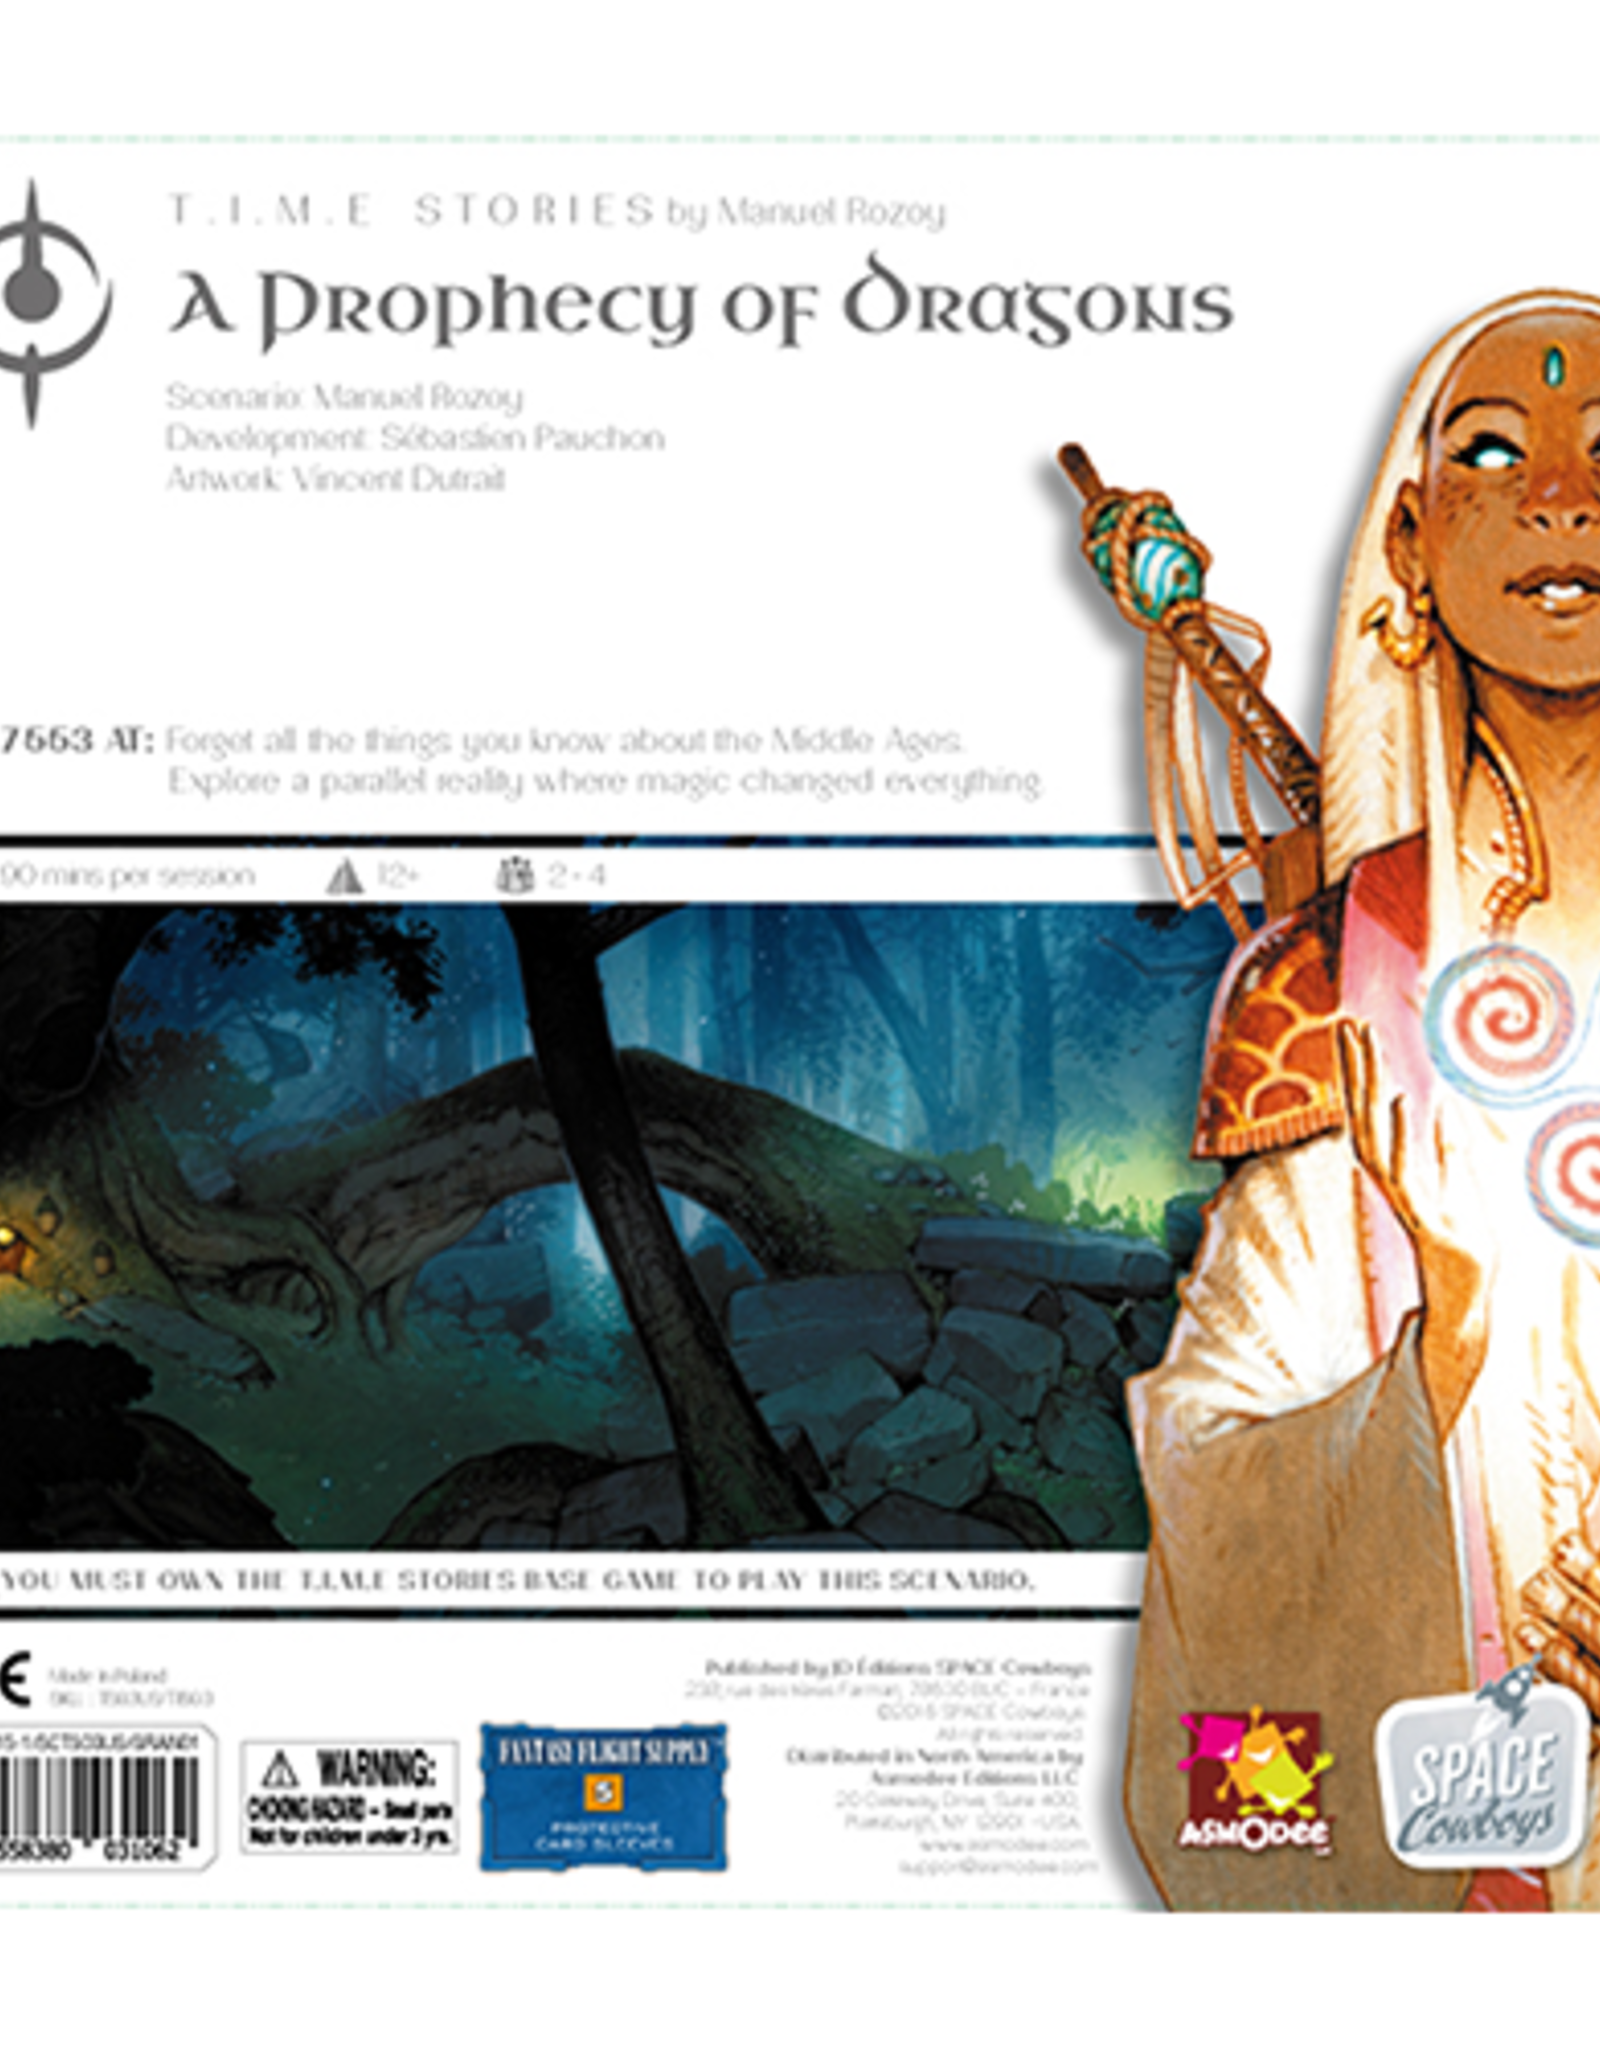 Space Cowboys T.I.M.E. Stories (Time Stories): A Prophecy of Dragons Expansion